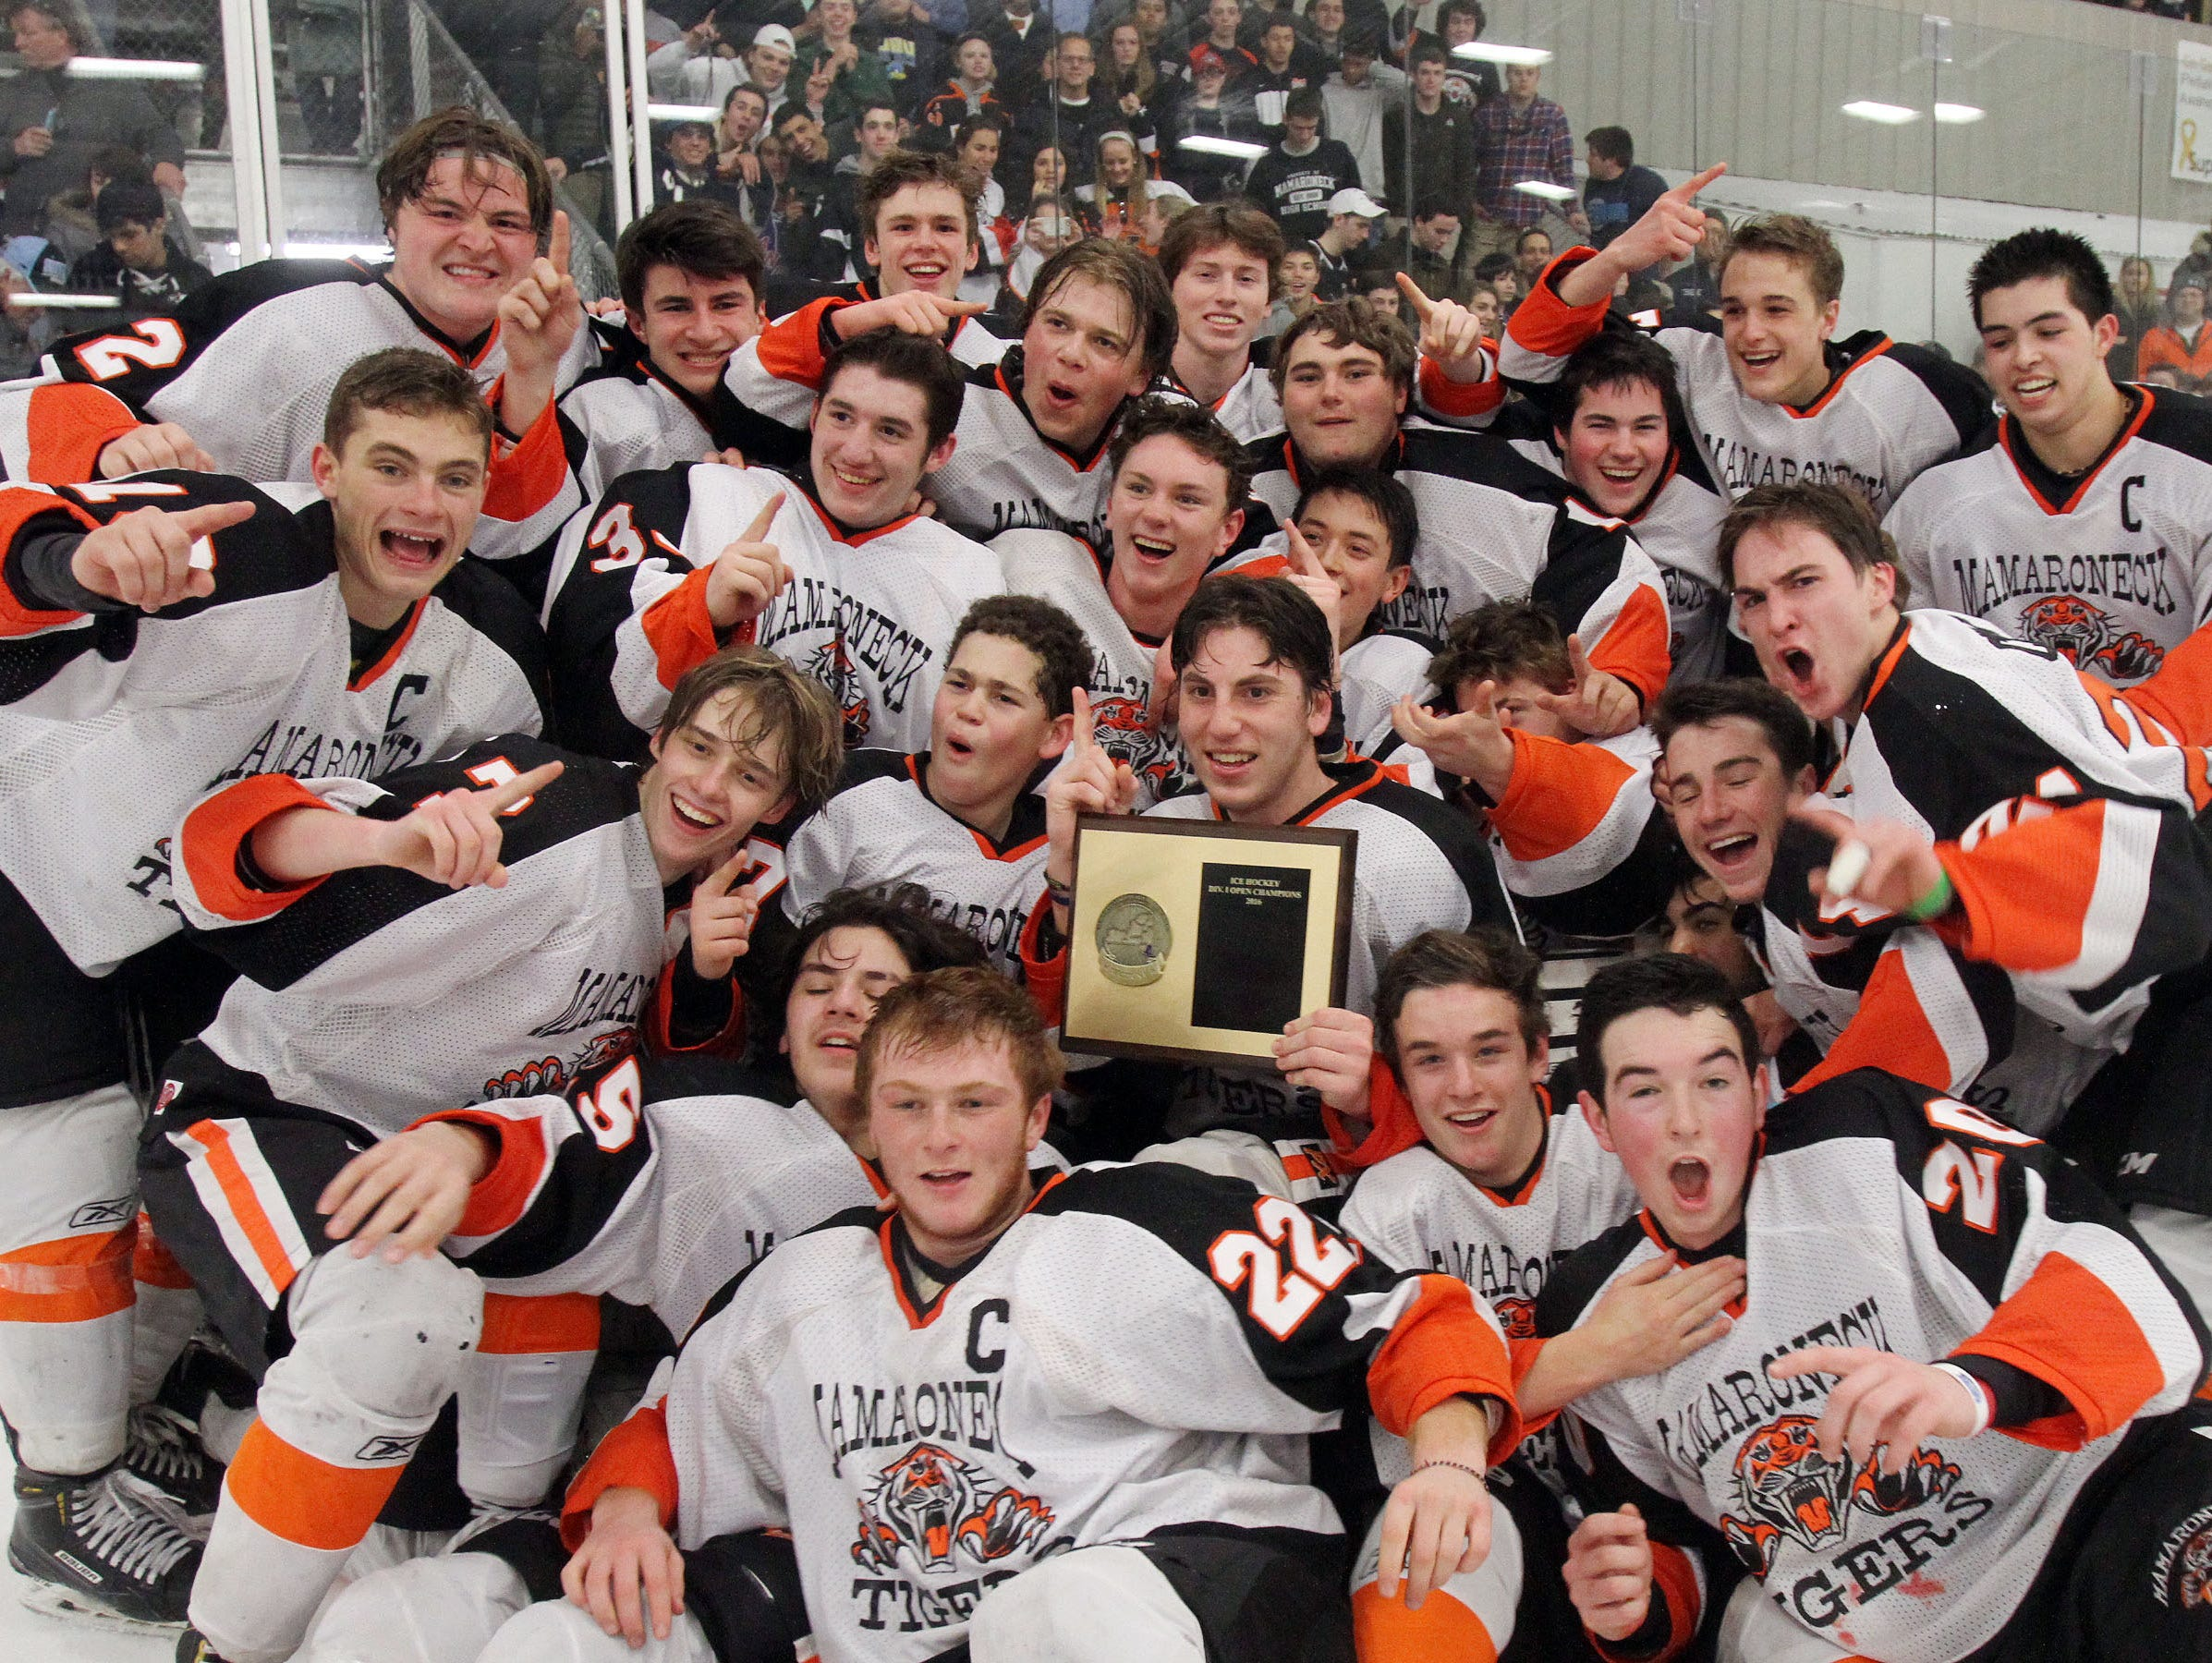 Mamaroneck players celebrate with the Section 1 championship plaque after defeating Suffern 5-1 at The Brewster Sports Arena Feb. 26, 2016.